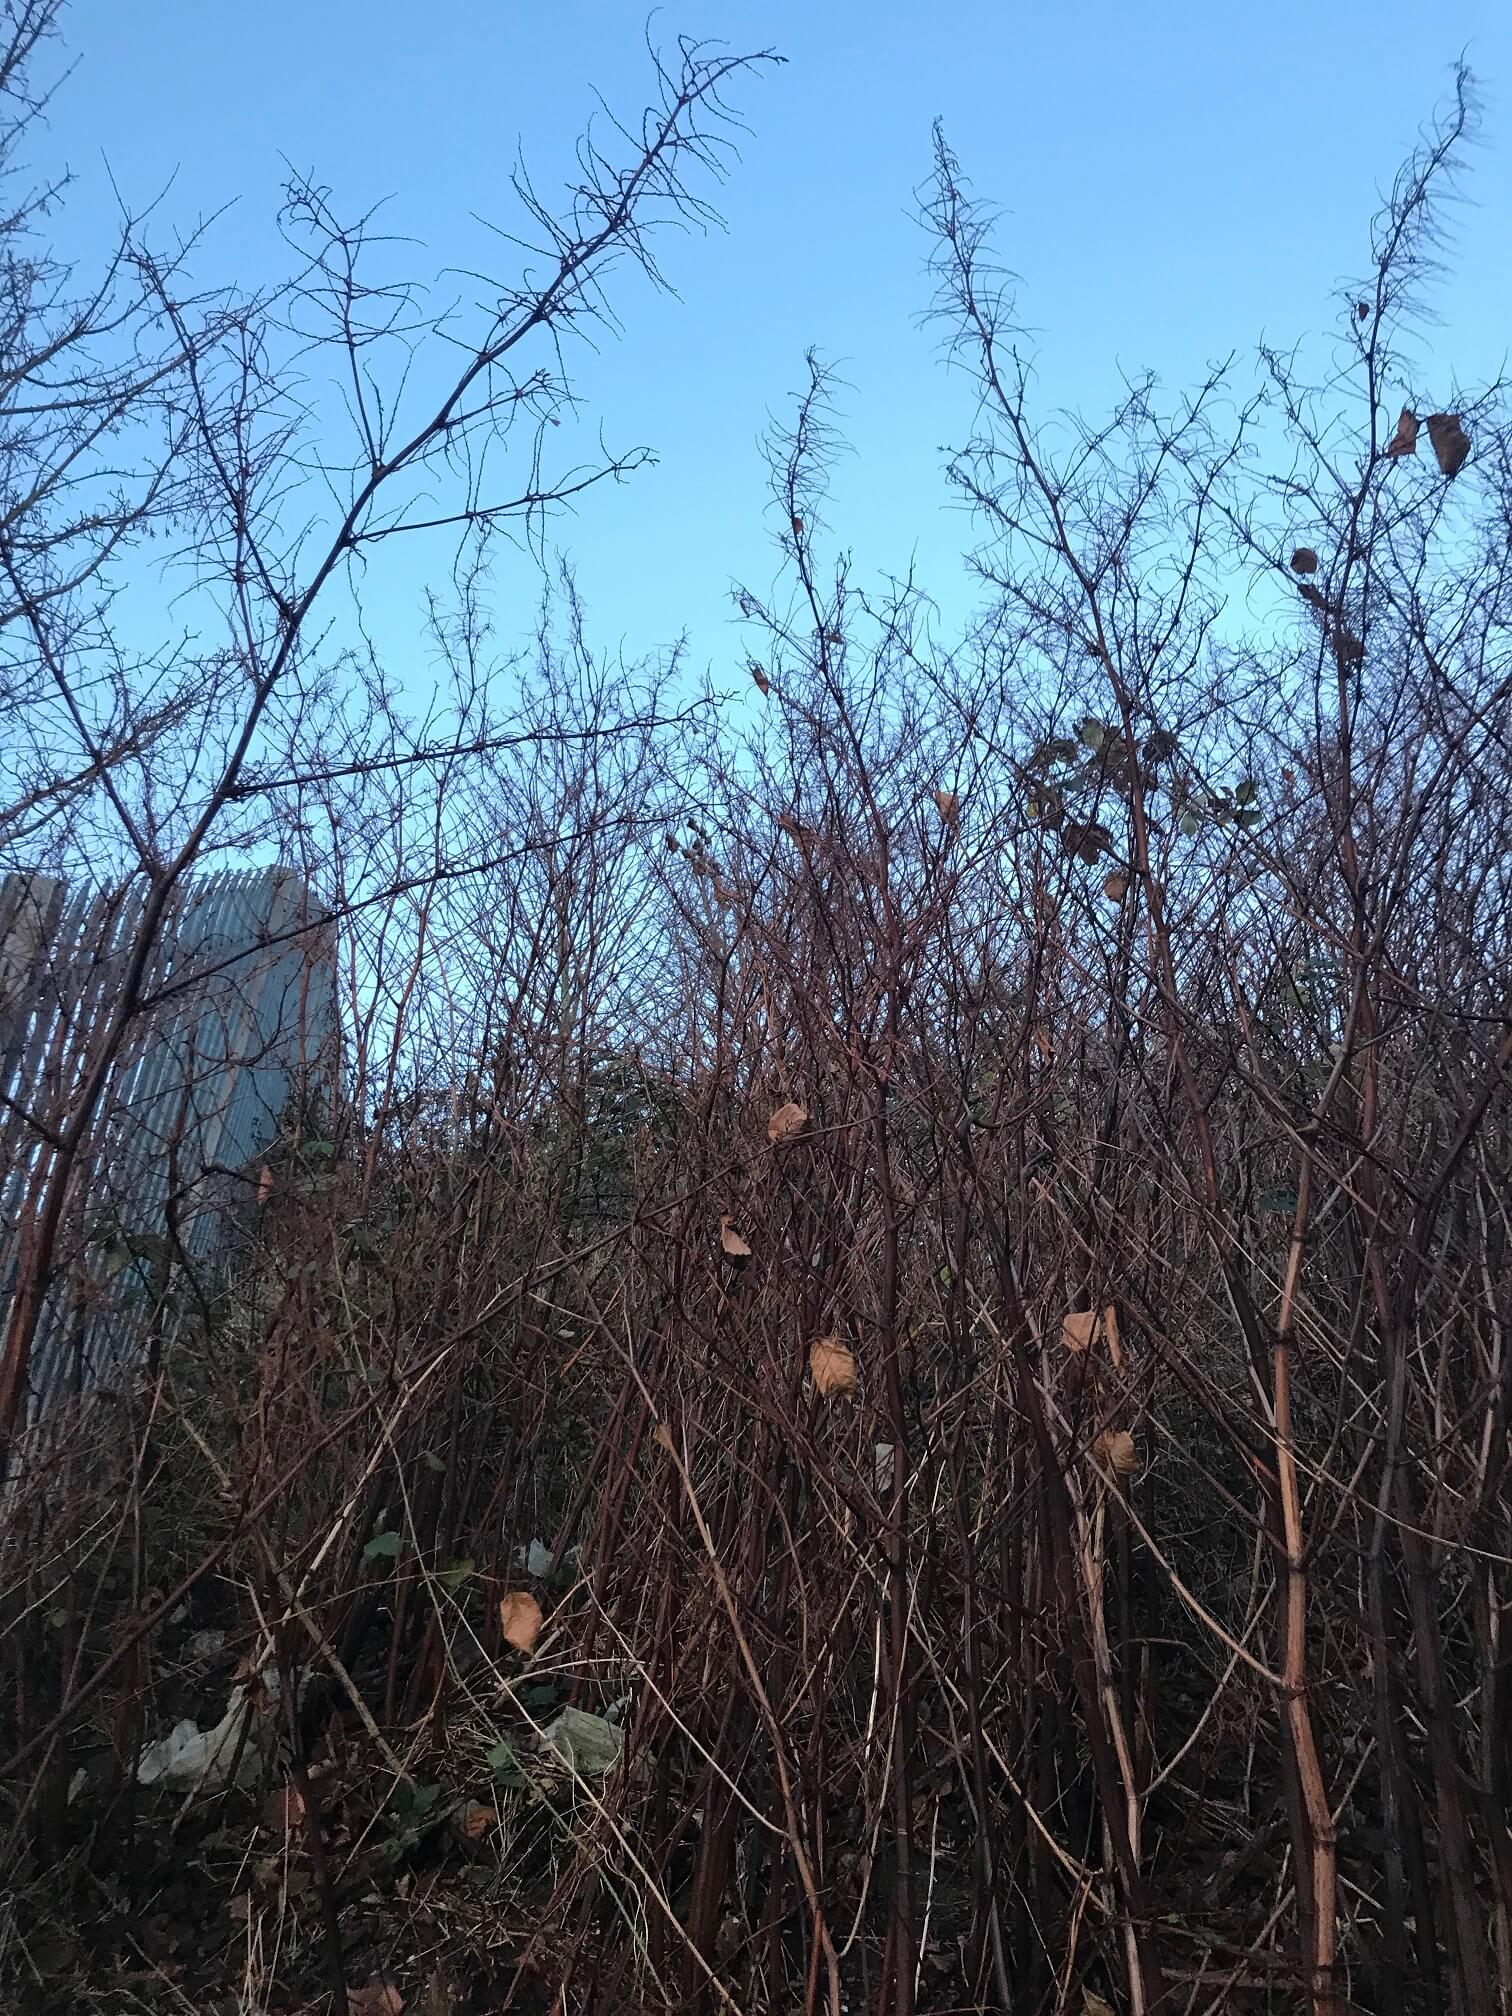 Identifying Japanese Knotweed - Stems with no foliage